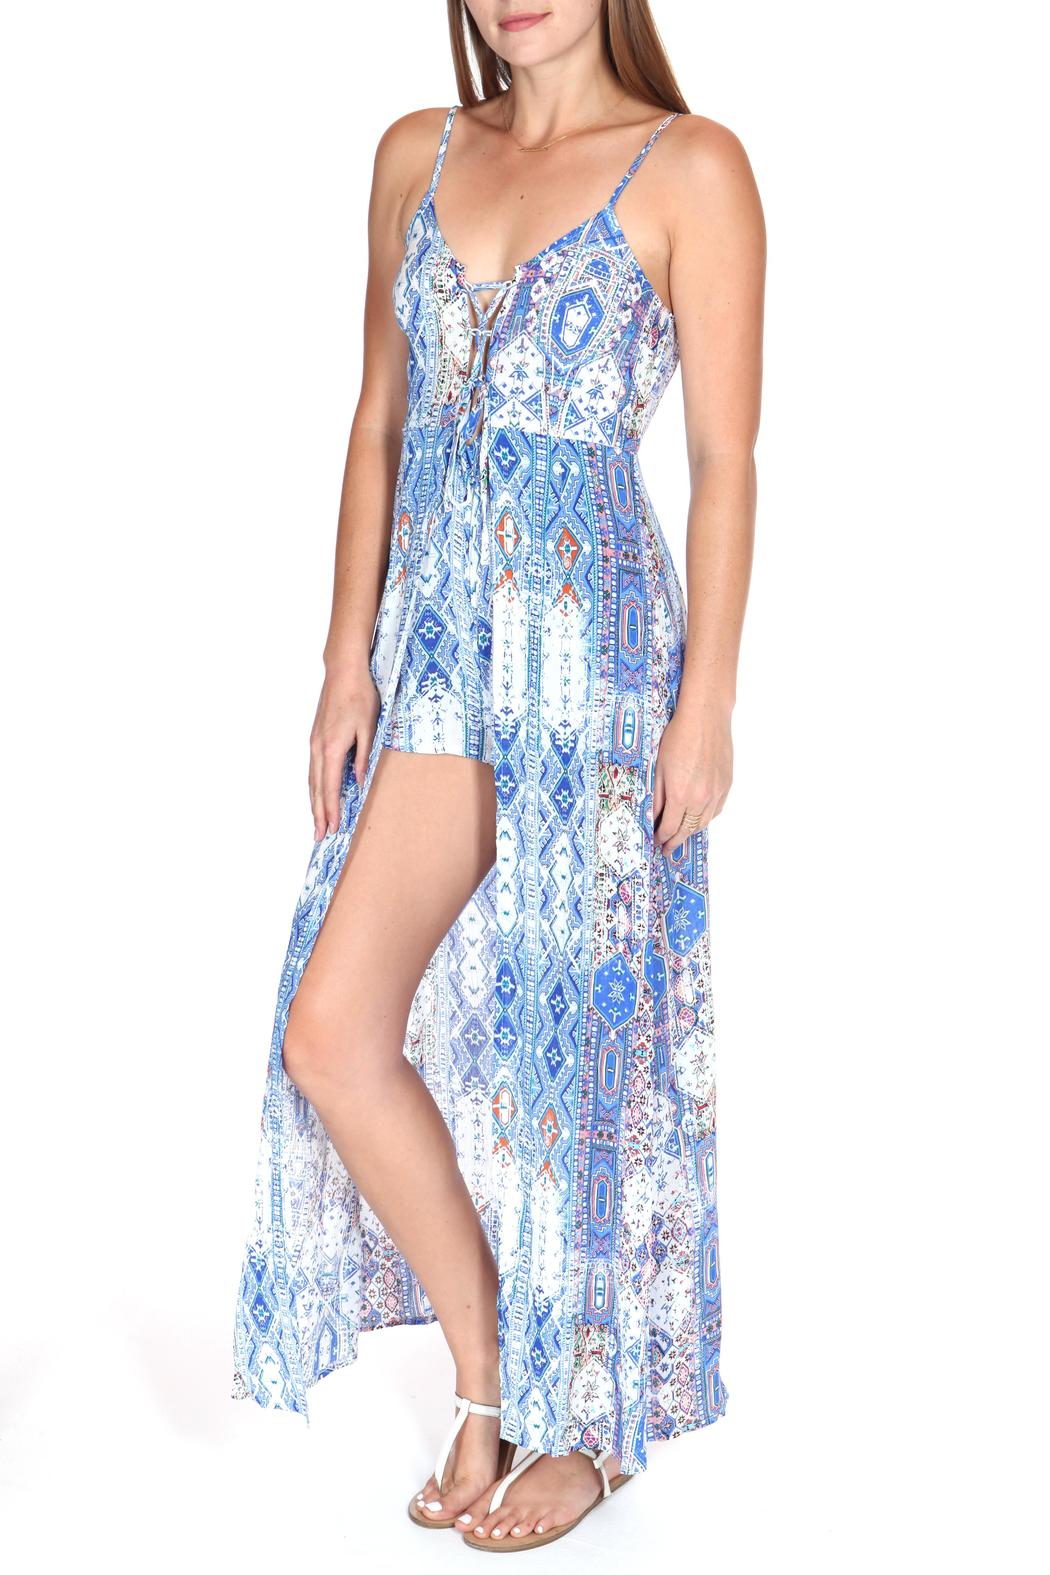 8e2e8cc2bf1 ShopGoldies Lace-Up Maxi Romper from Los Angeles by Goldie s ...